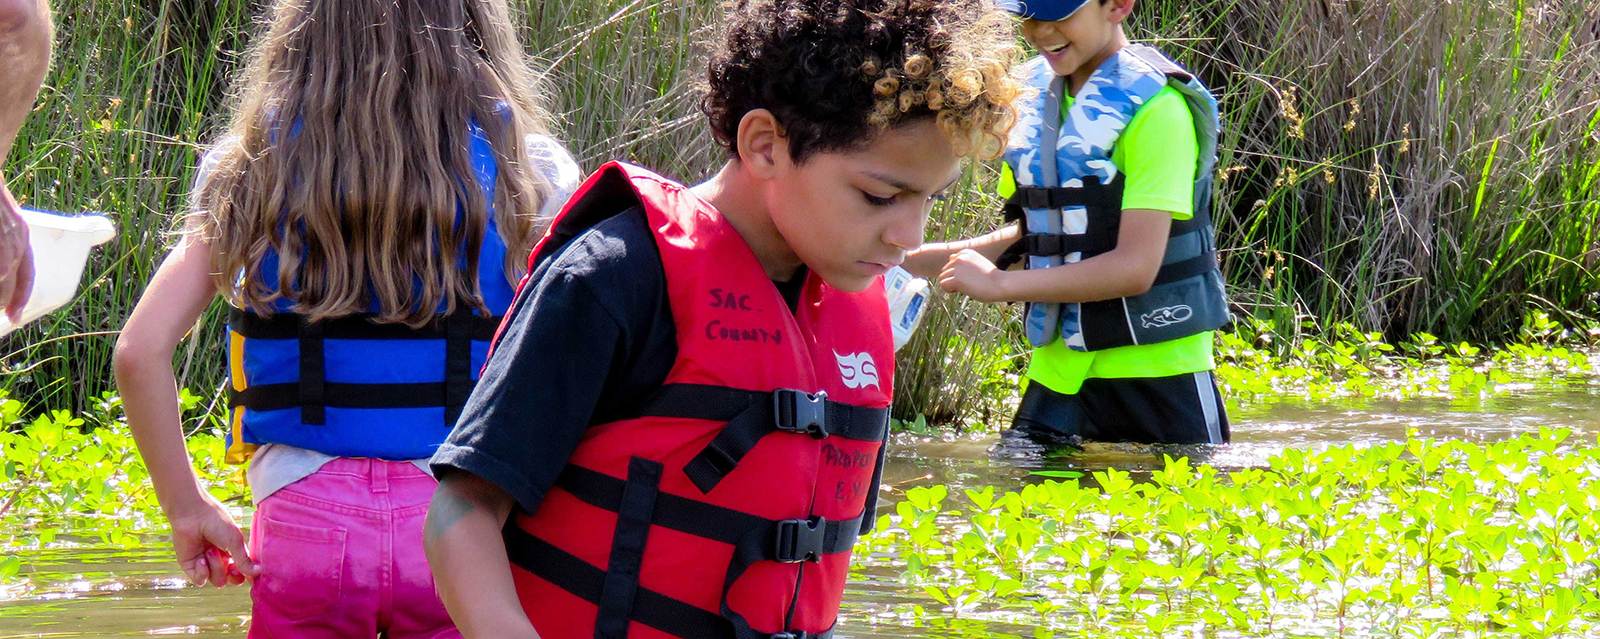 Kids Exploring the Water at Summer Camp